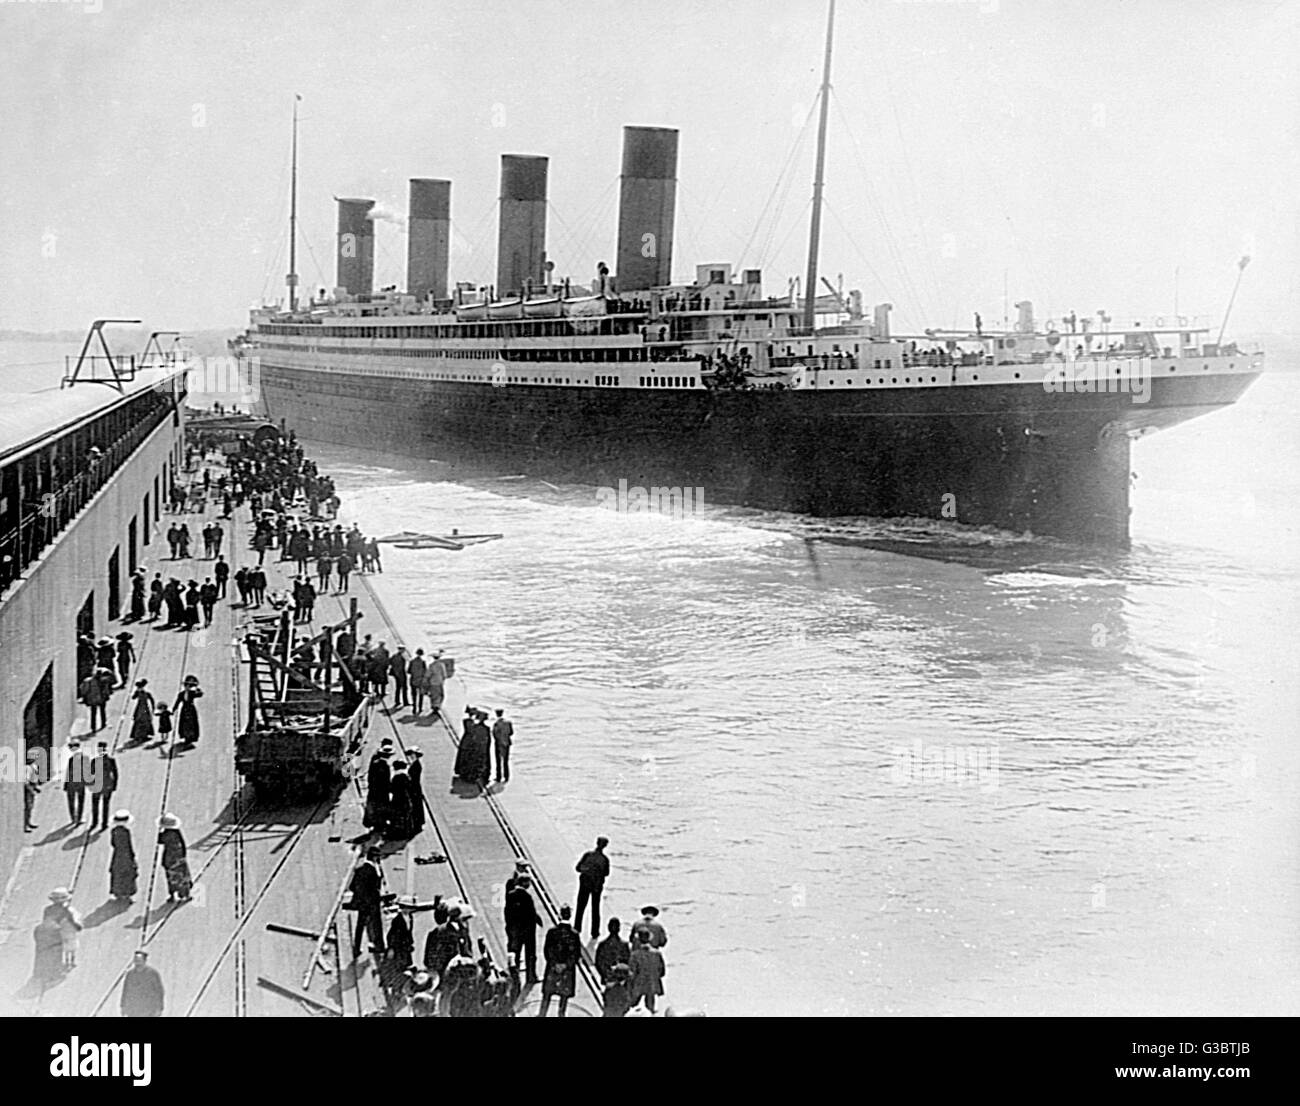 RMS Olympic, White Star Line cruise ship, leaving Southampton, with people watching from the quay.   early 20th - Stock Image